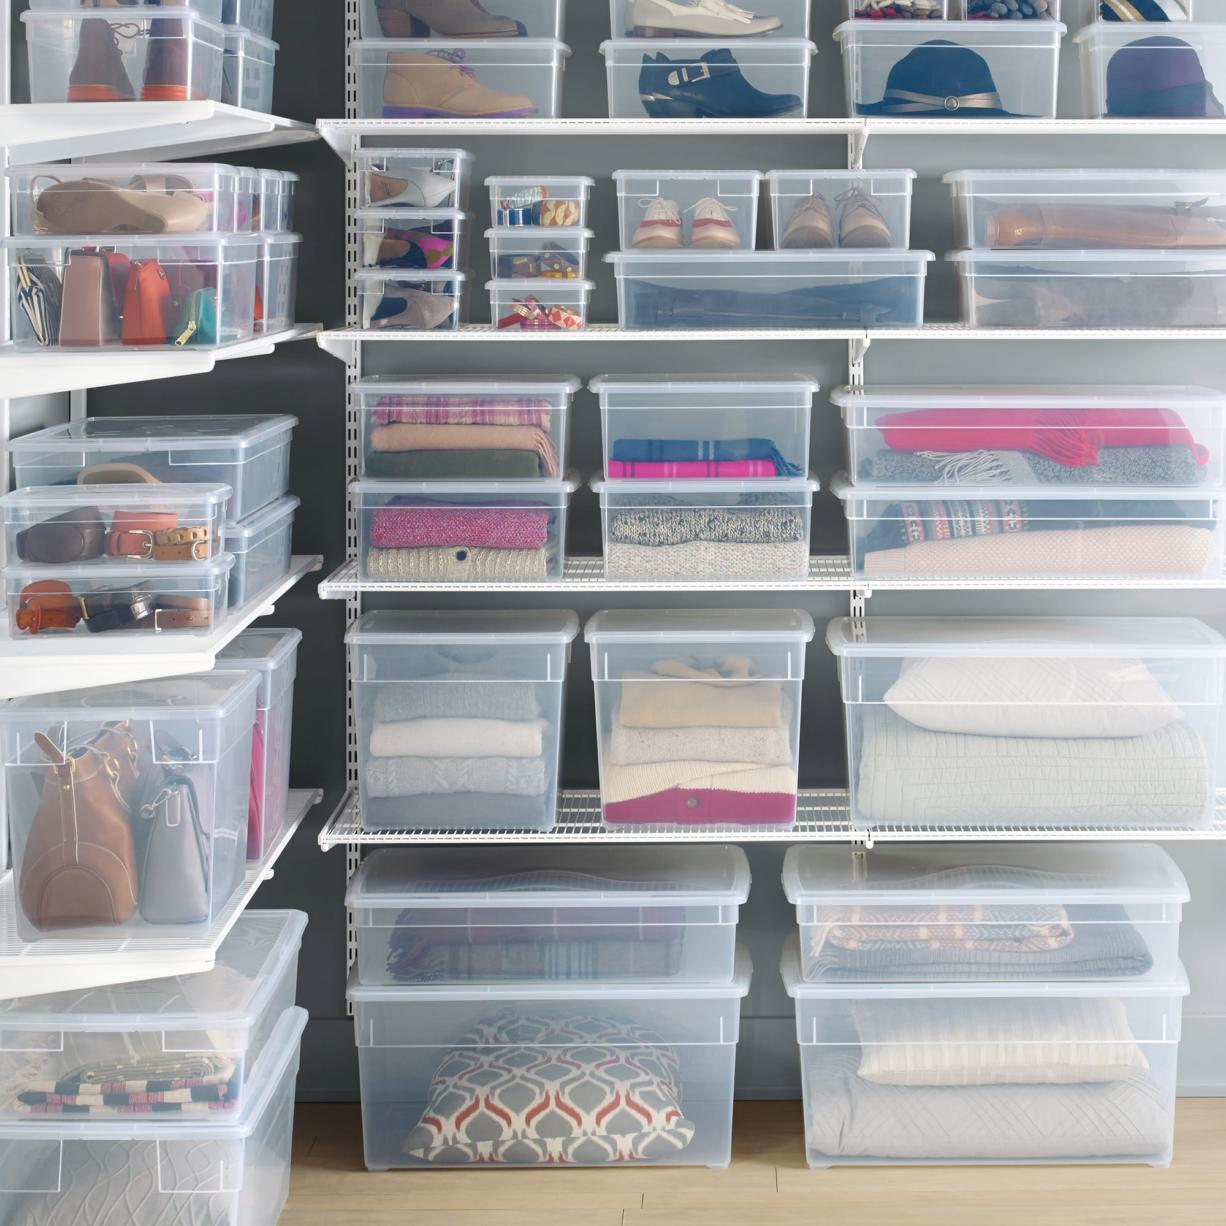 The Container Store Clear storage bins can help cut down clutter and help you see what's where.